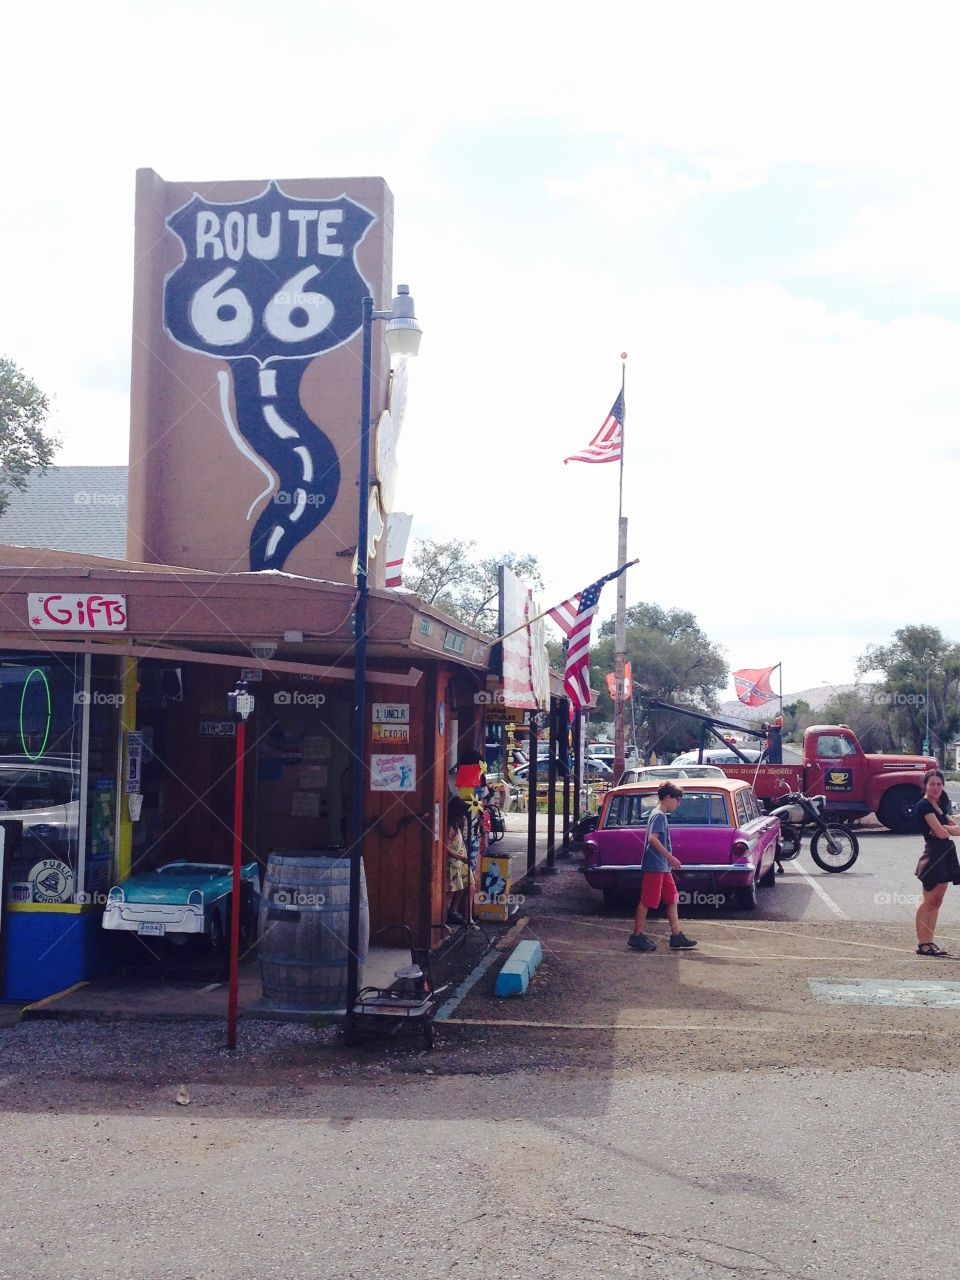 Beautiful stores on the route66 Arizona